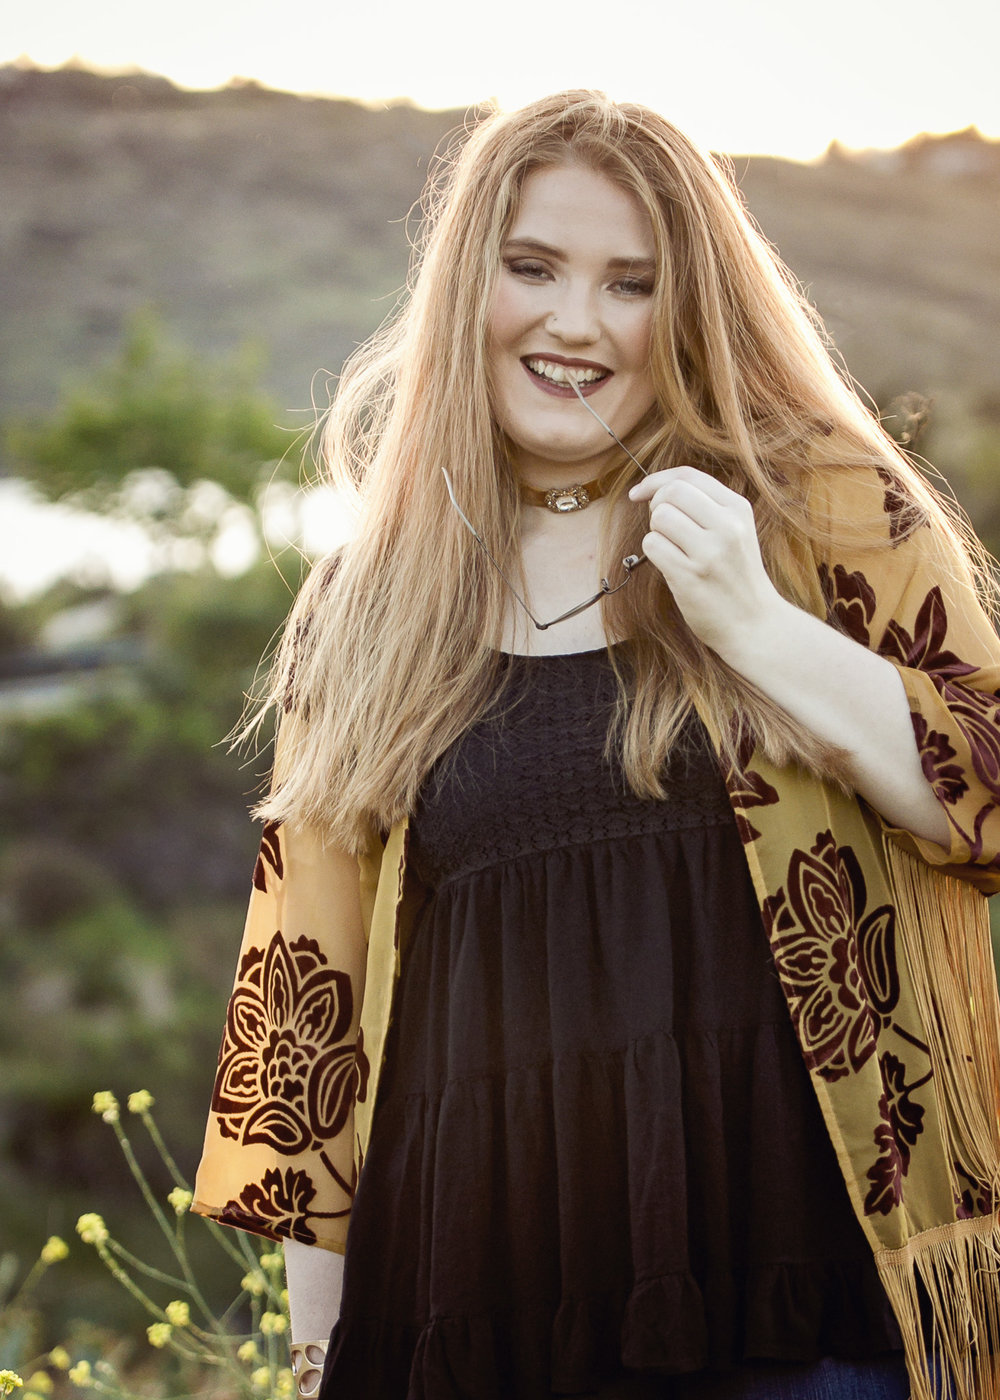 shawna-parks-photo-Moa-Smith-high-school-senior-San-Diego021.jpg